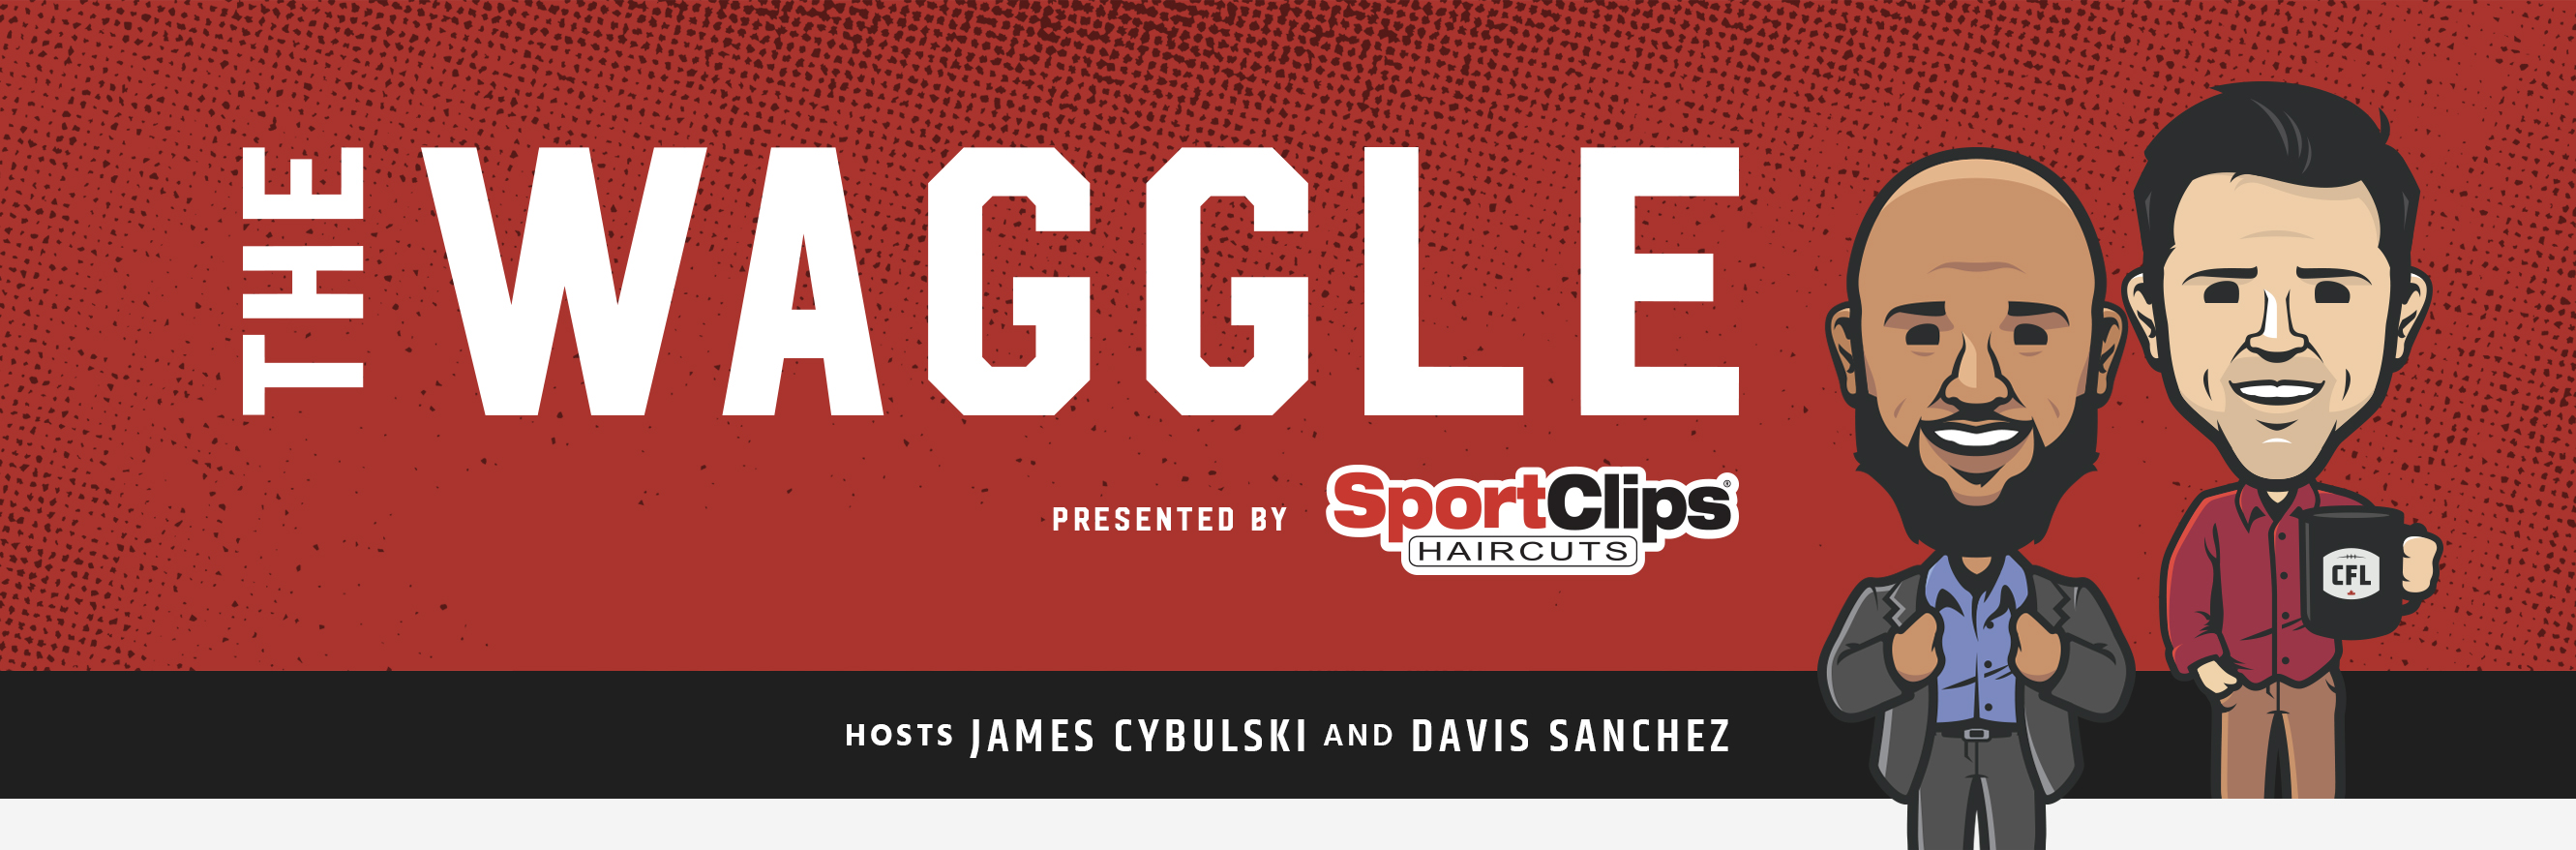 Sport Clips Joins On As Presenting Sponsor Of The Waggle Podcast